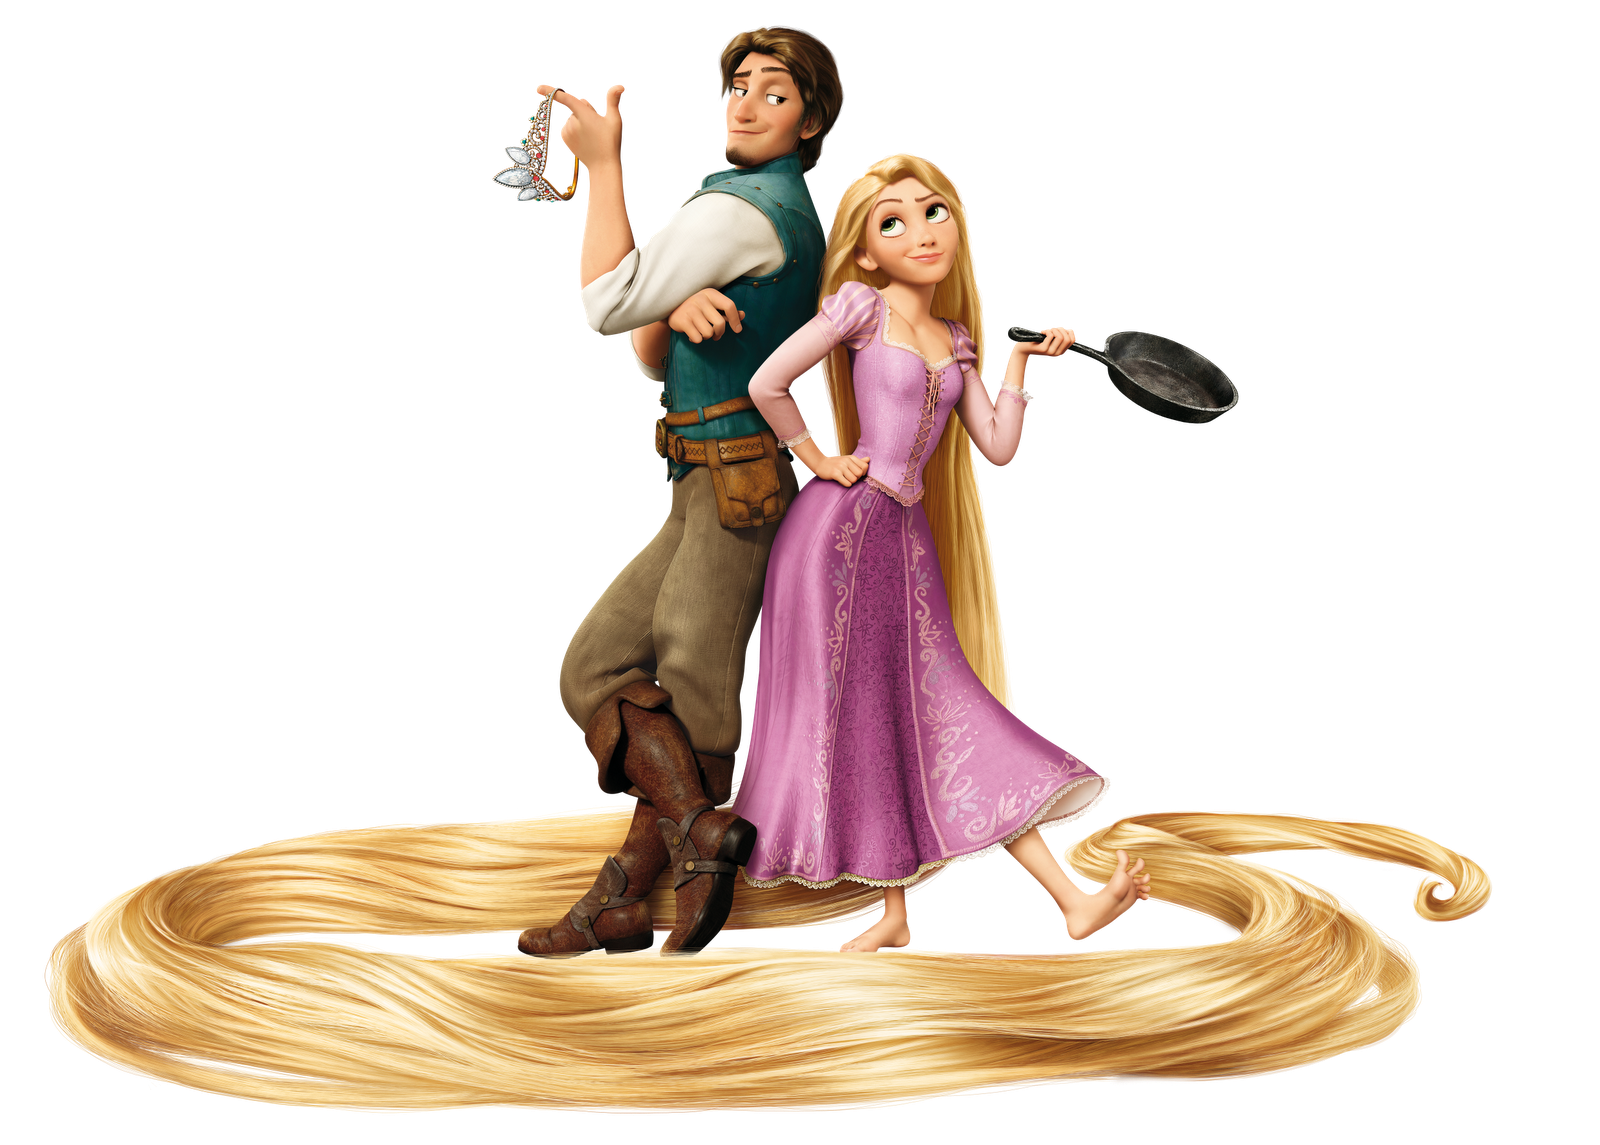 Tangled Tangled Wallpaper Image for Phone - Cartoons Wallpapers